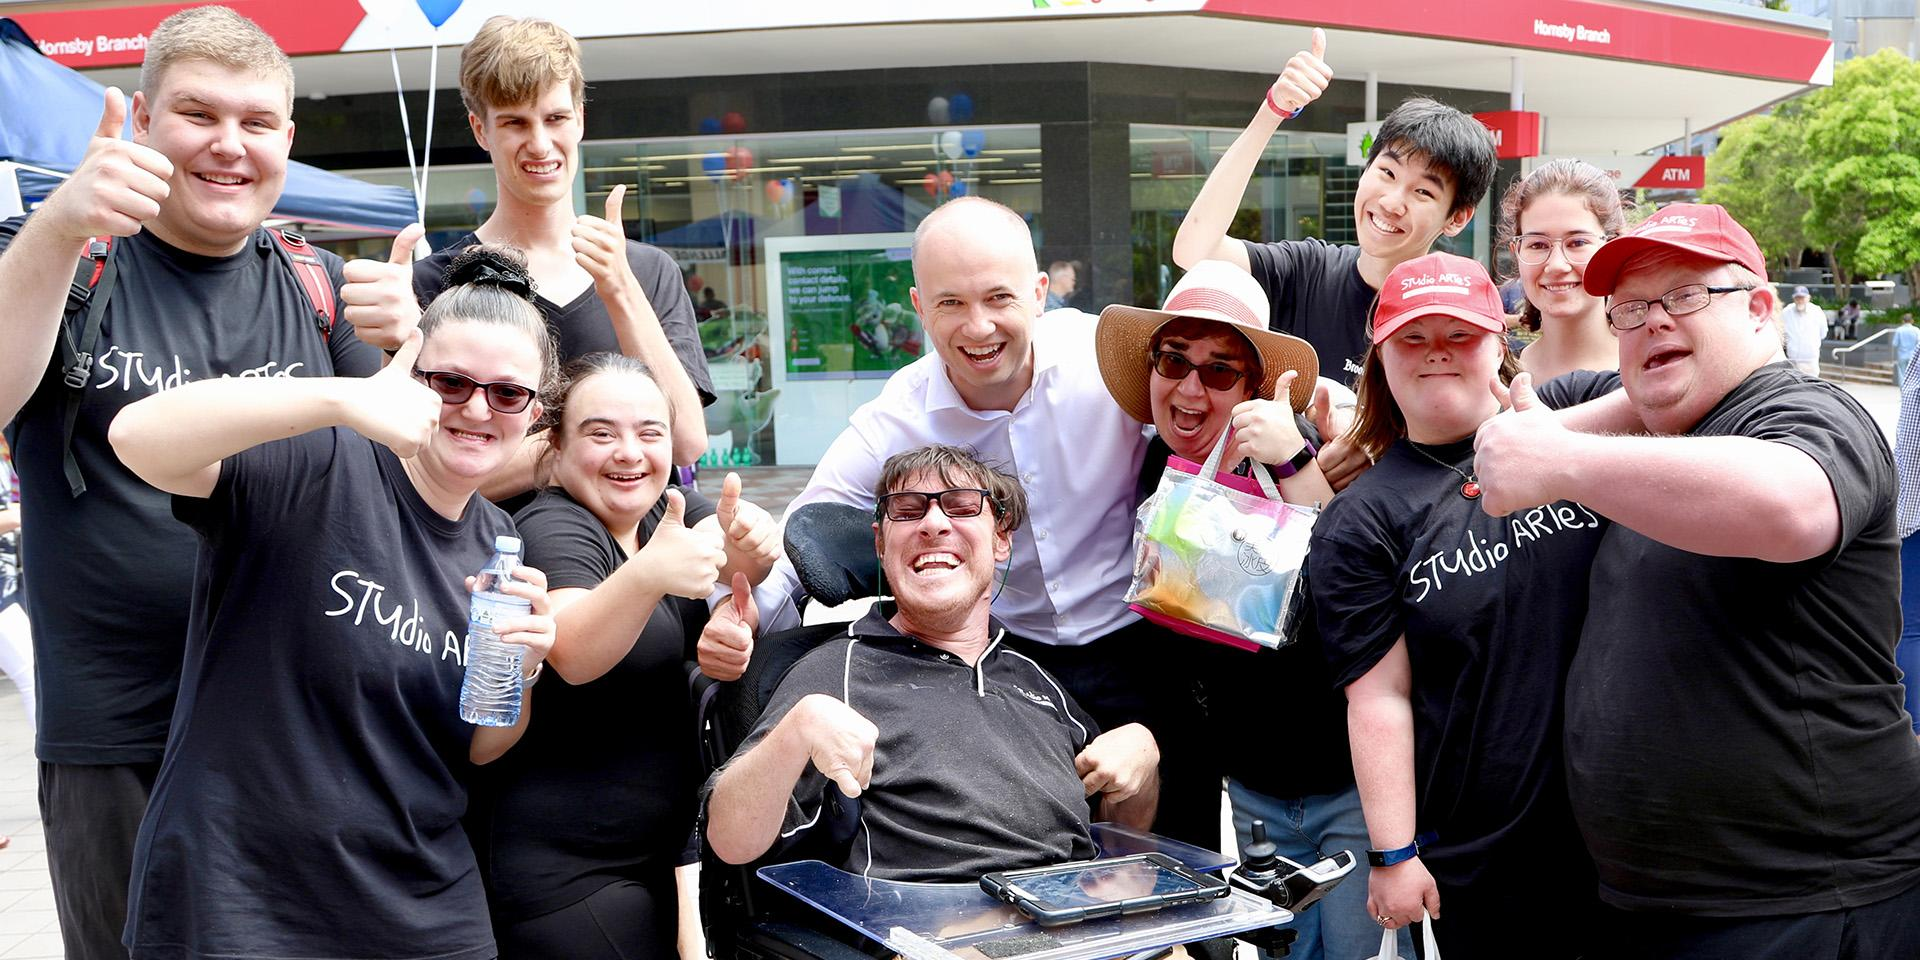 Member for Hornsby Matt Kean MP with members of STUDIO ARTES